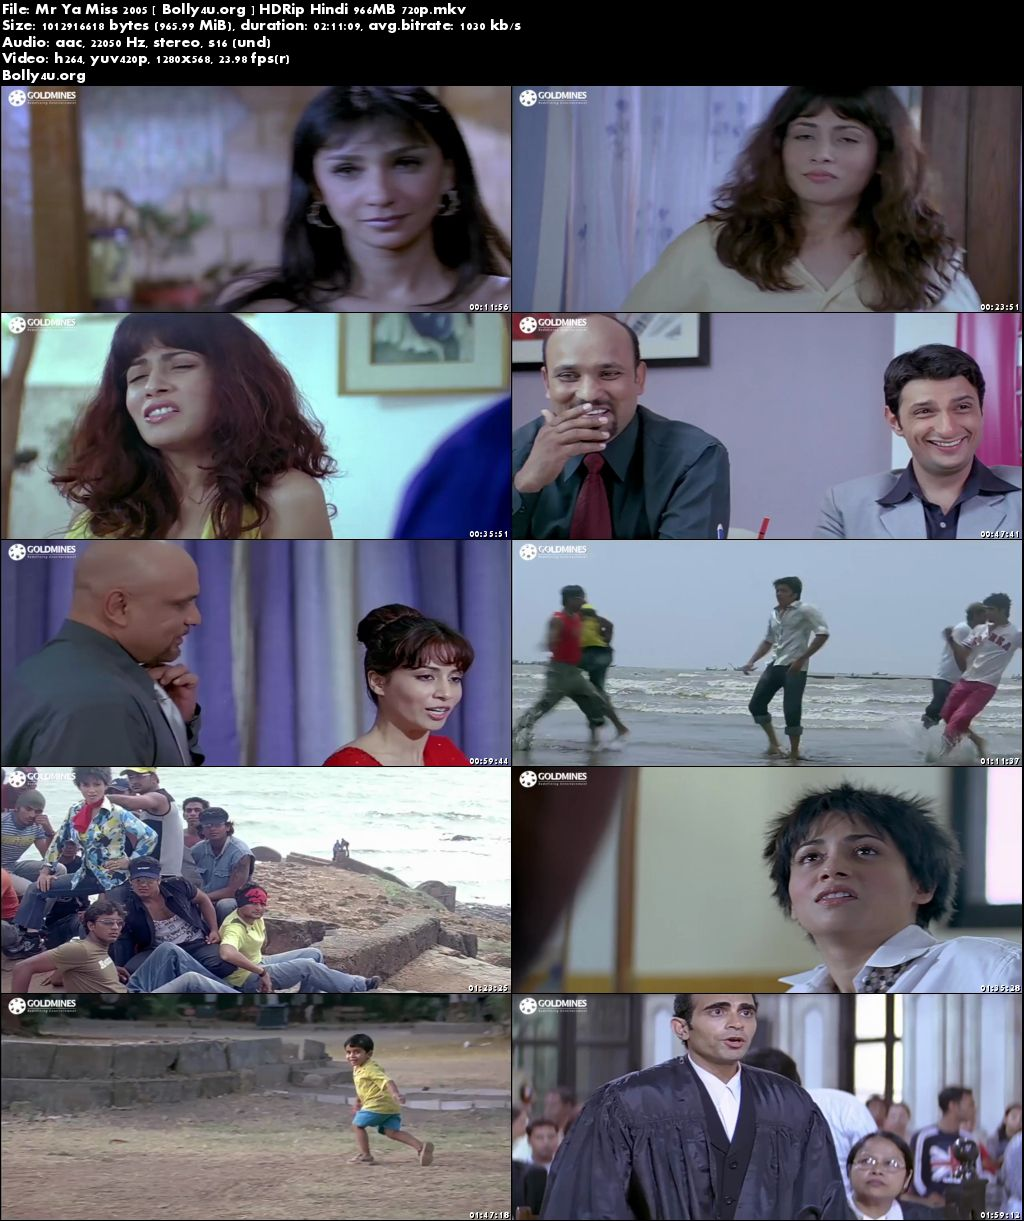 Mr Ya Miss 2005 HDRip 350MB Hindi Movie 480p Download